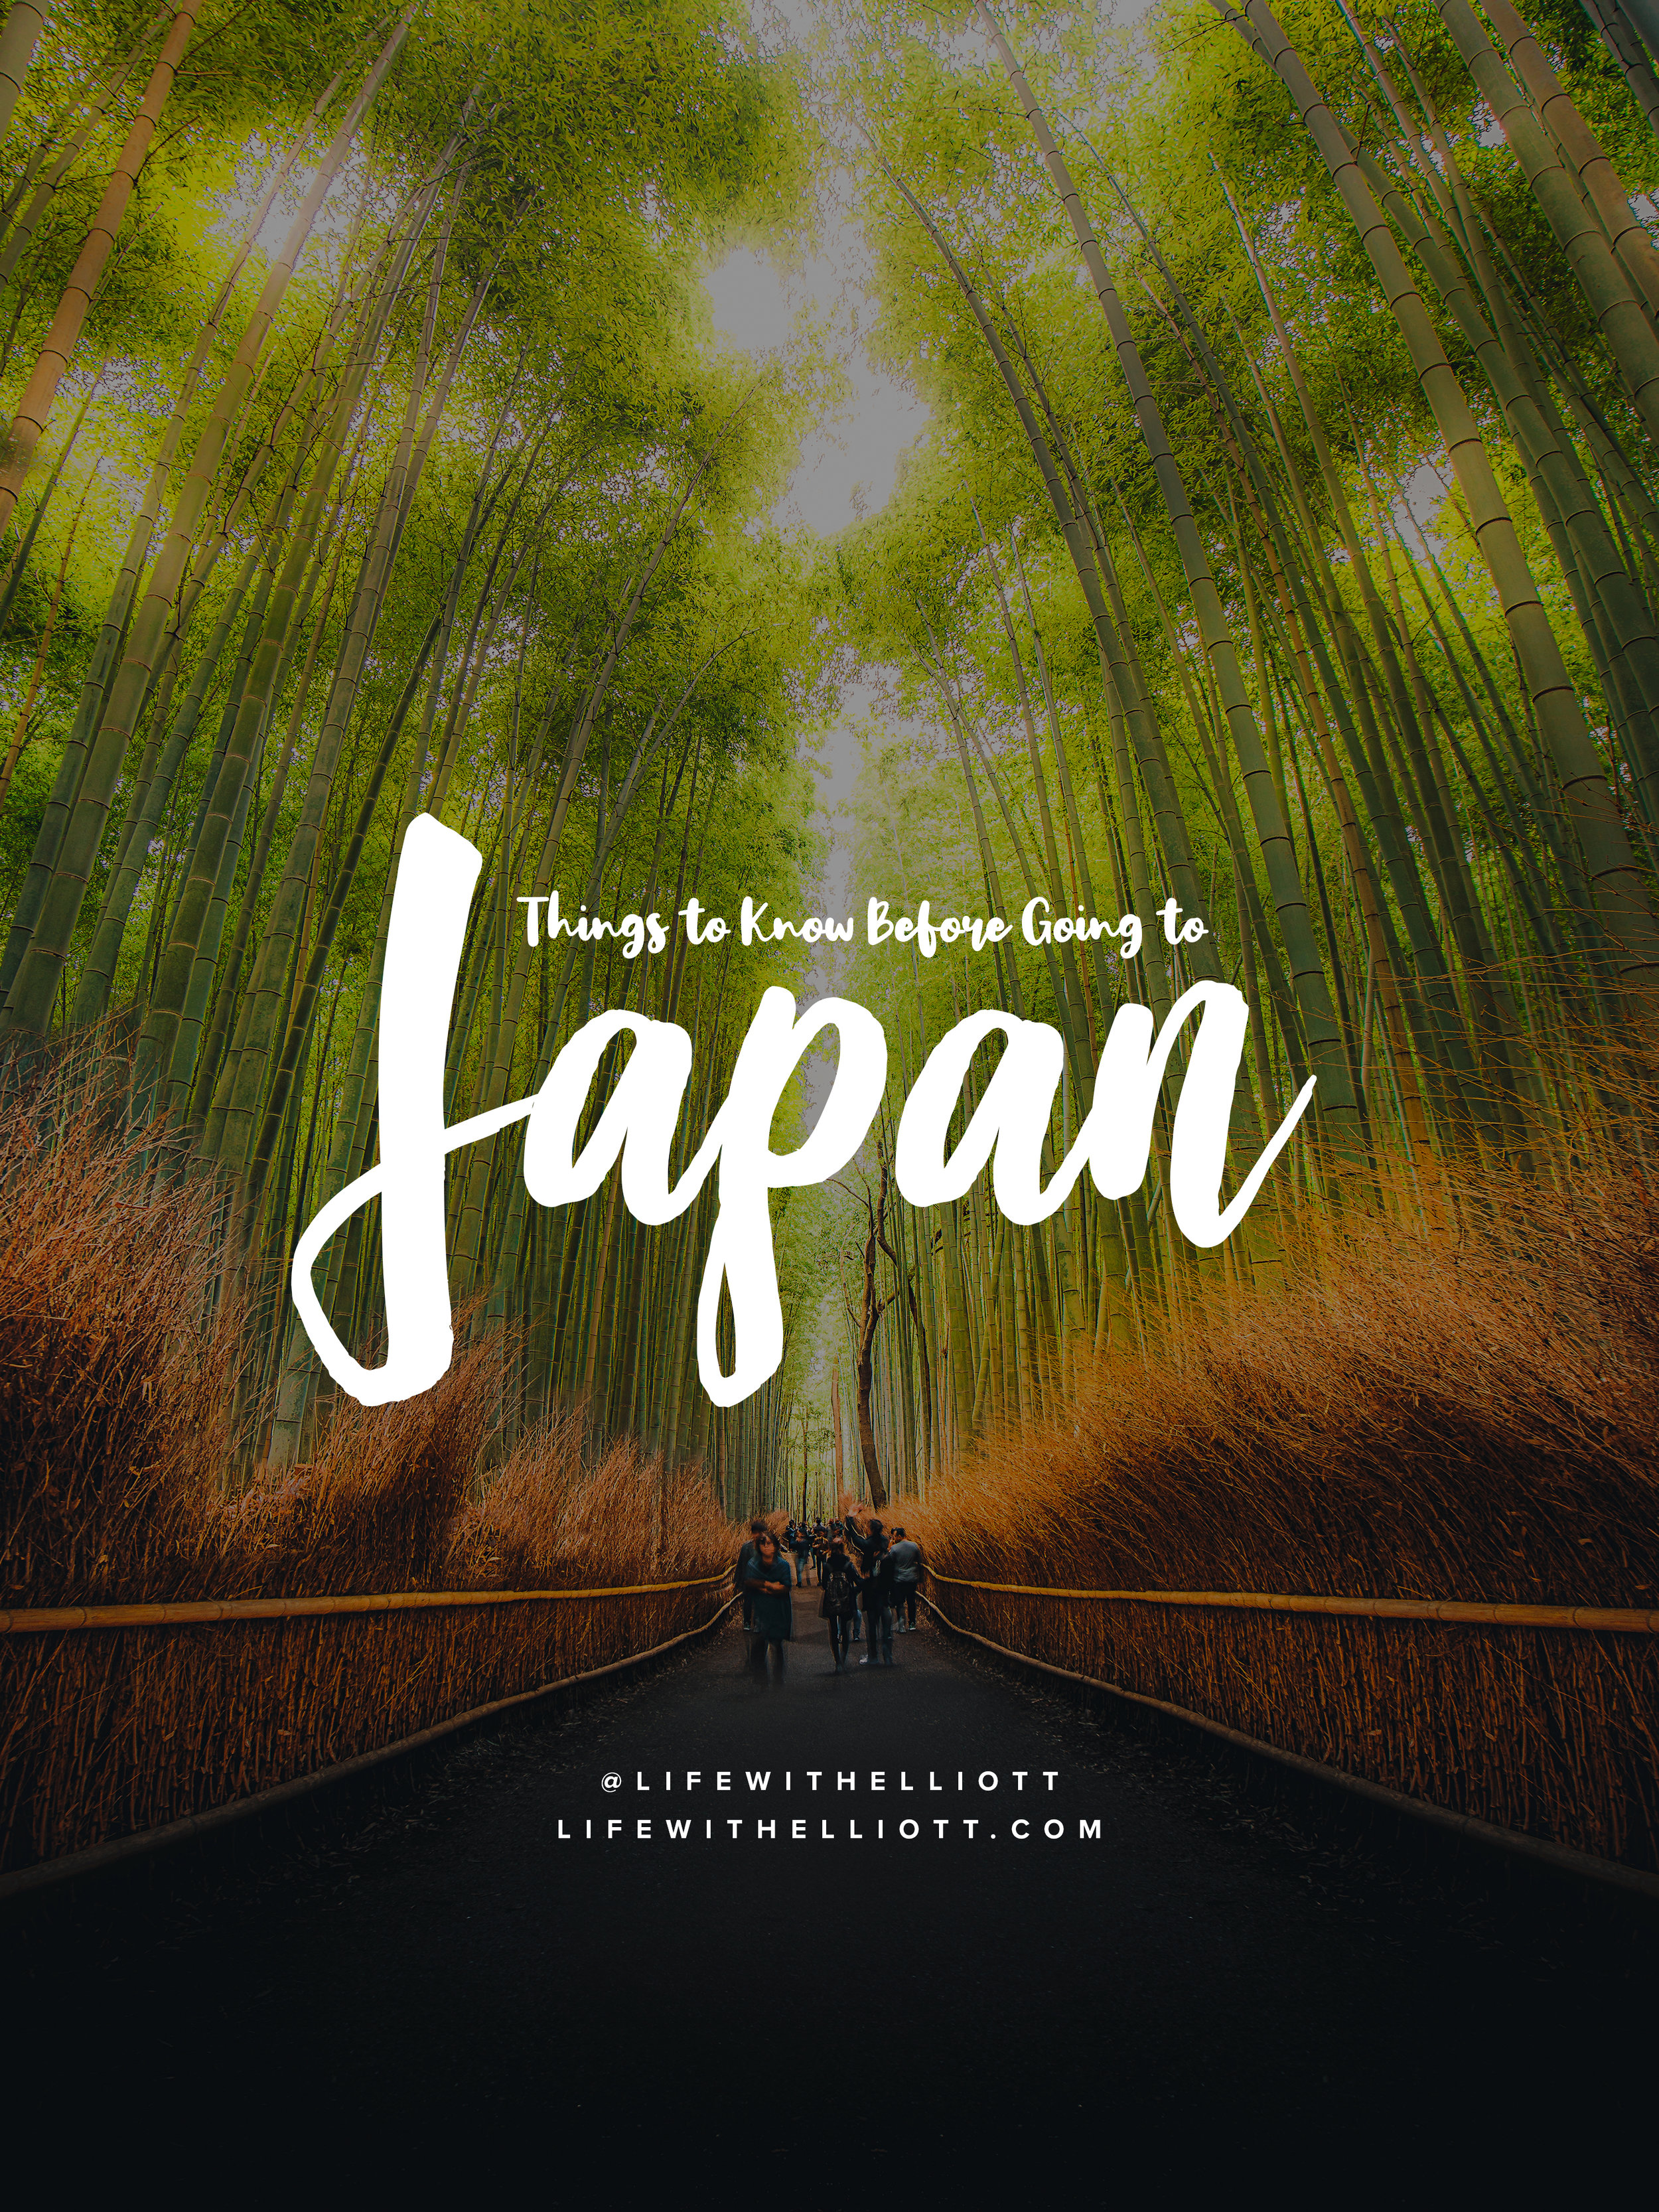 Things to Know Before Going to Japan by LifewithElliott